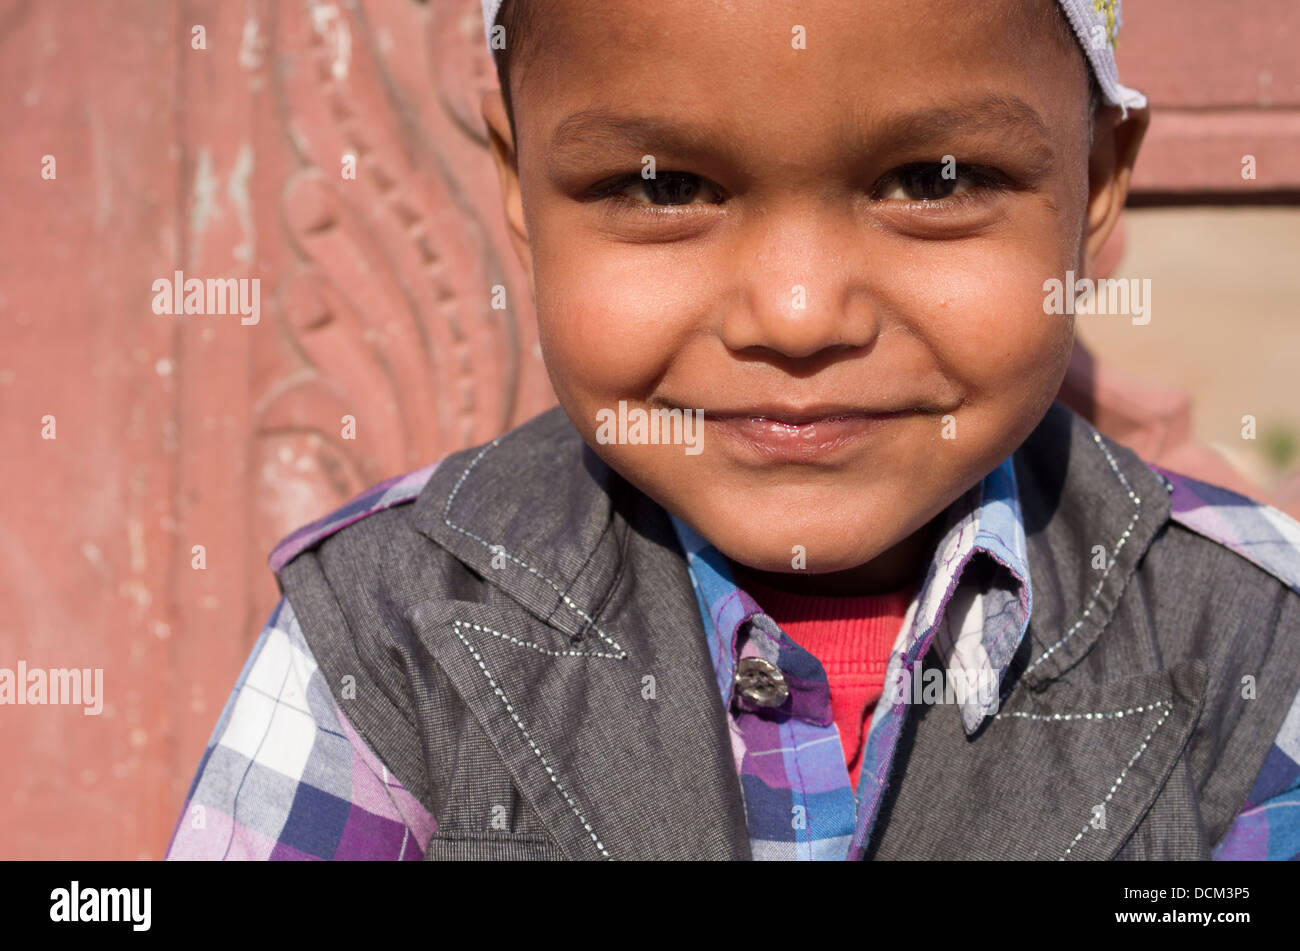 INdian child at Amber ( Amer ) Fort / Palace - Jaipur, Rajasthan, India - Stock Image